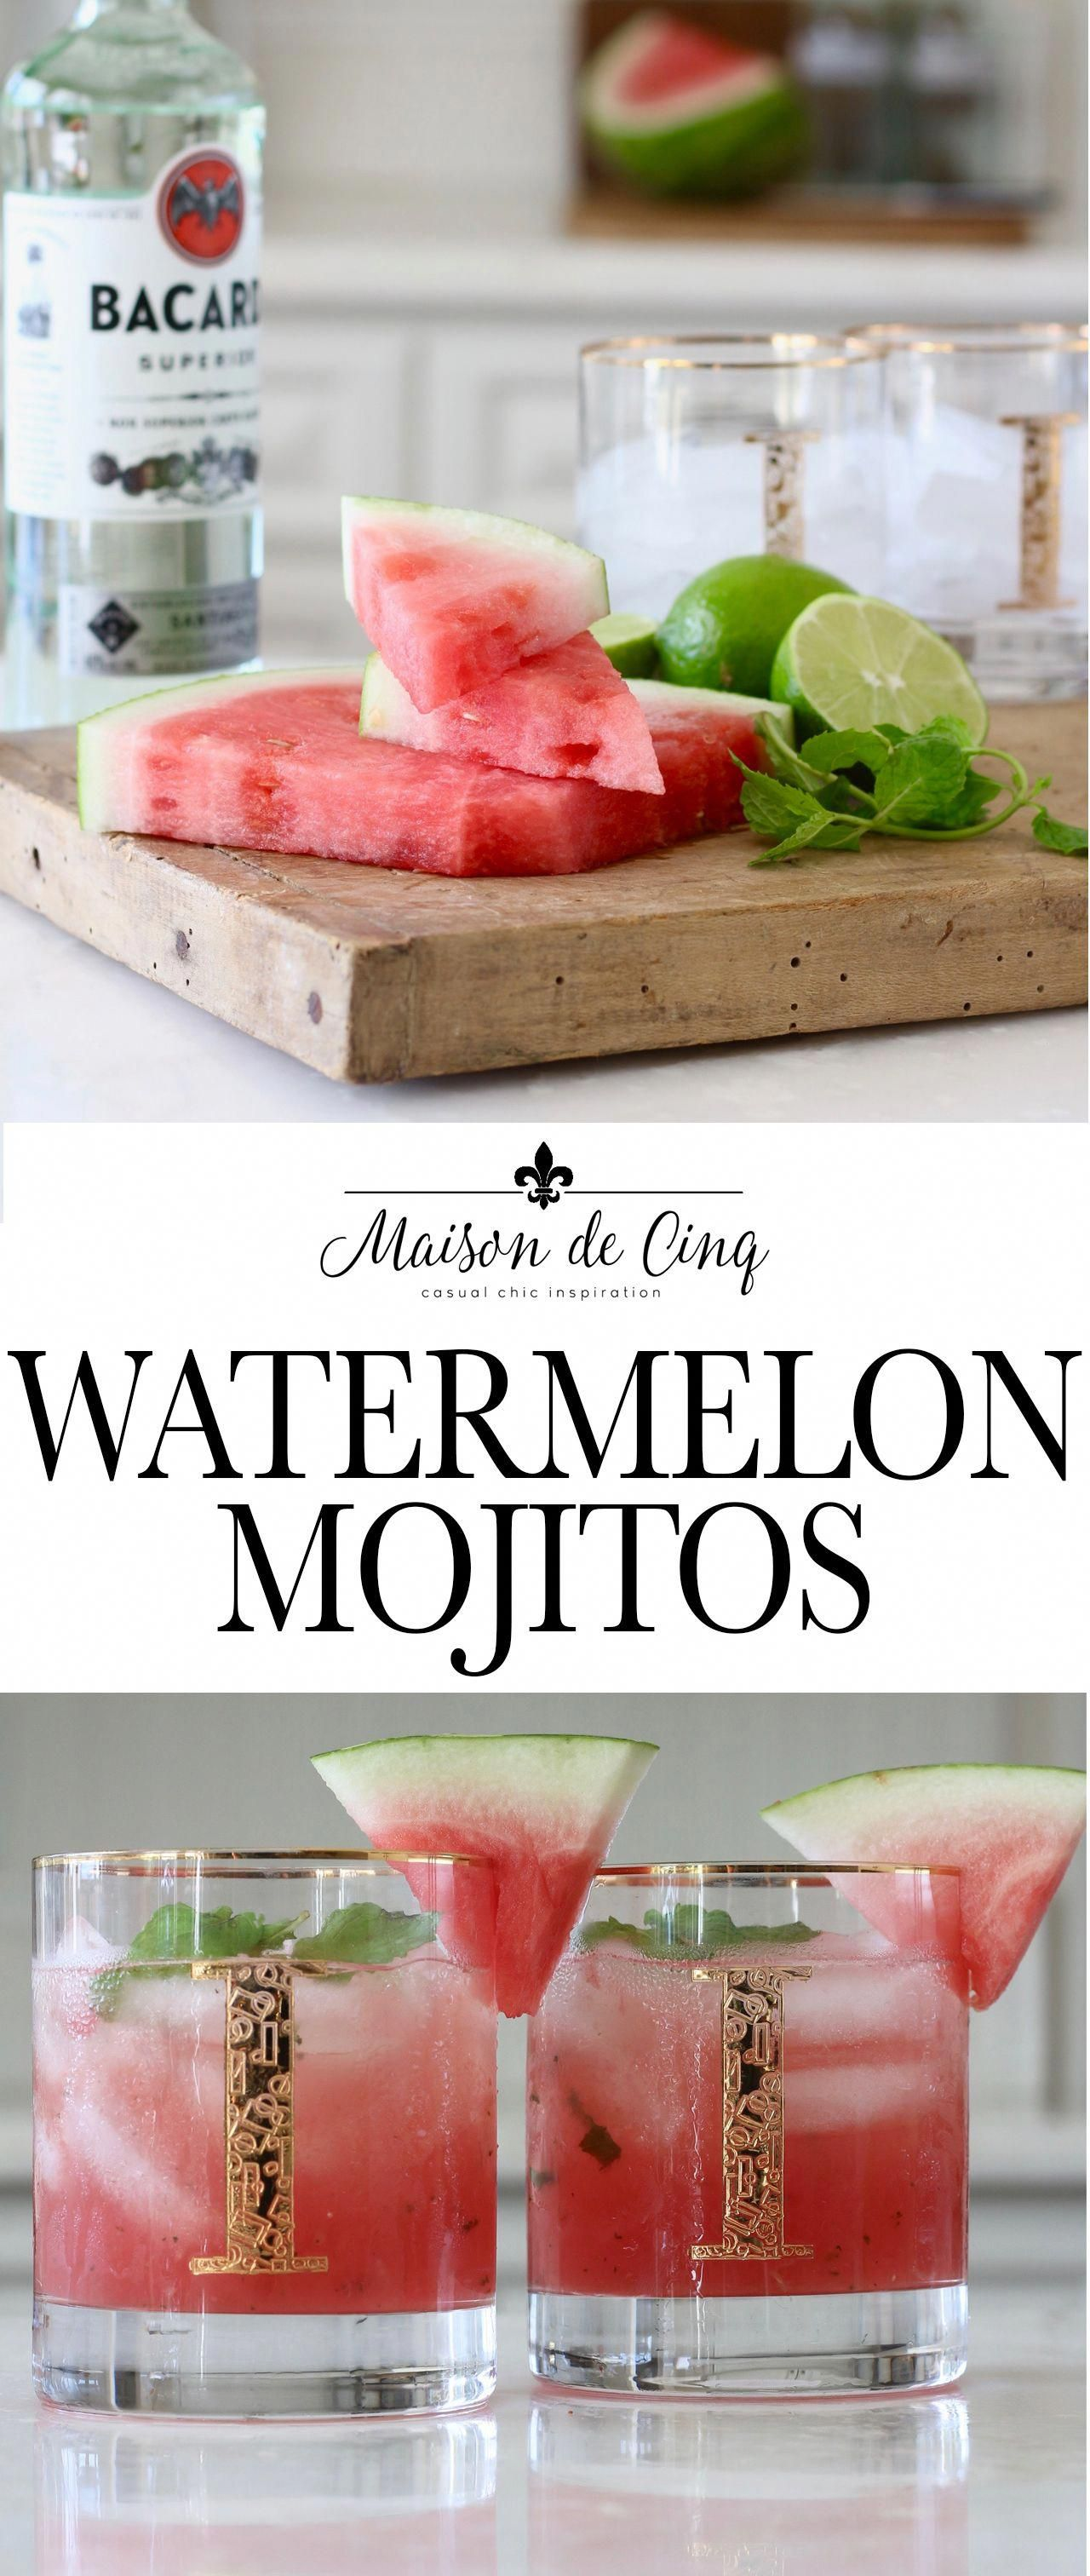 Delicious Watermelon Mojitos - perfect for summer! Absolutely the BEST mojitos ever!--->#maisondecinq